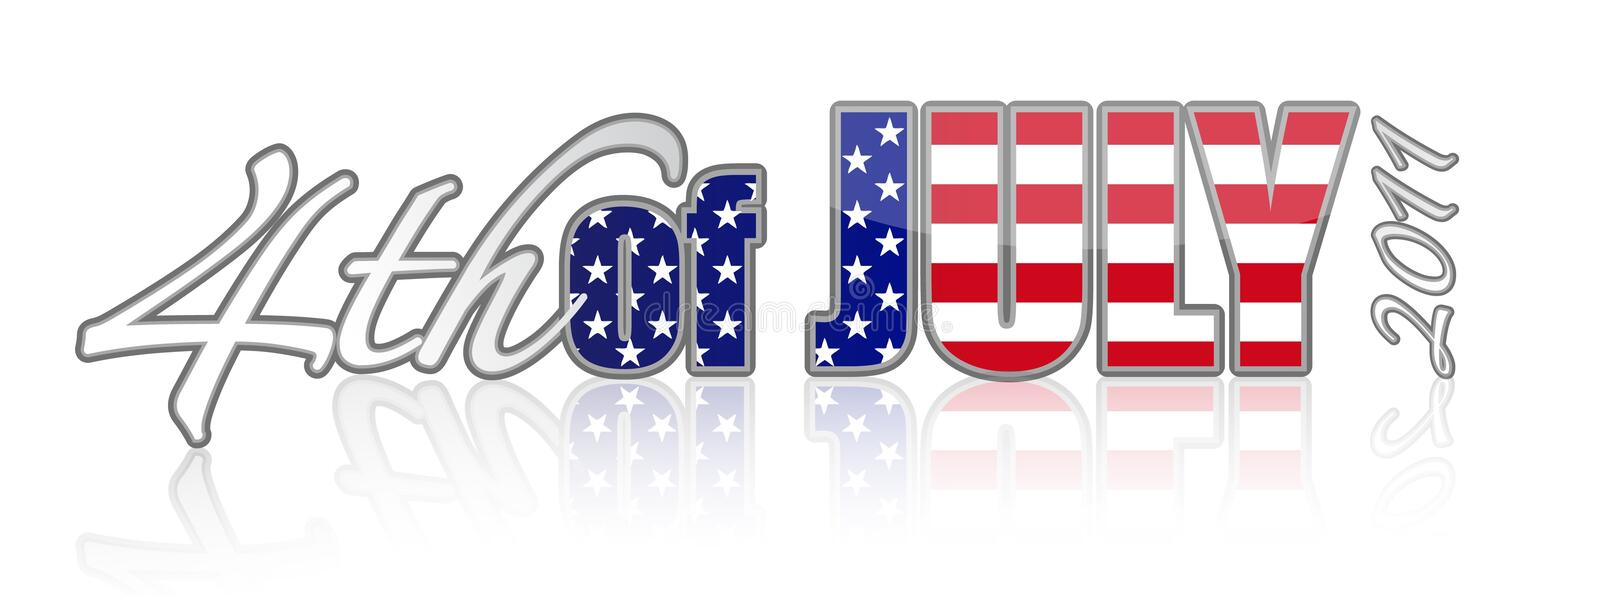 4th of july vector illustration